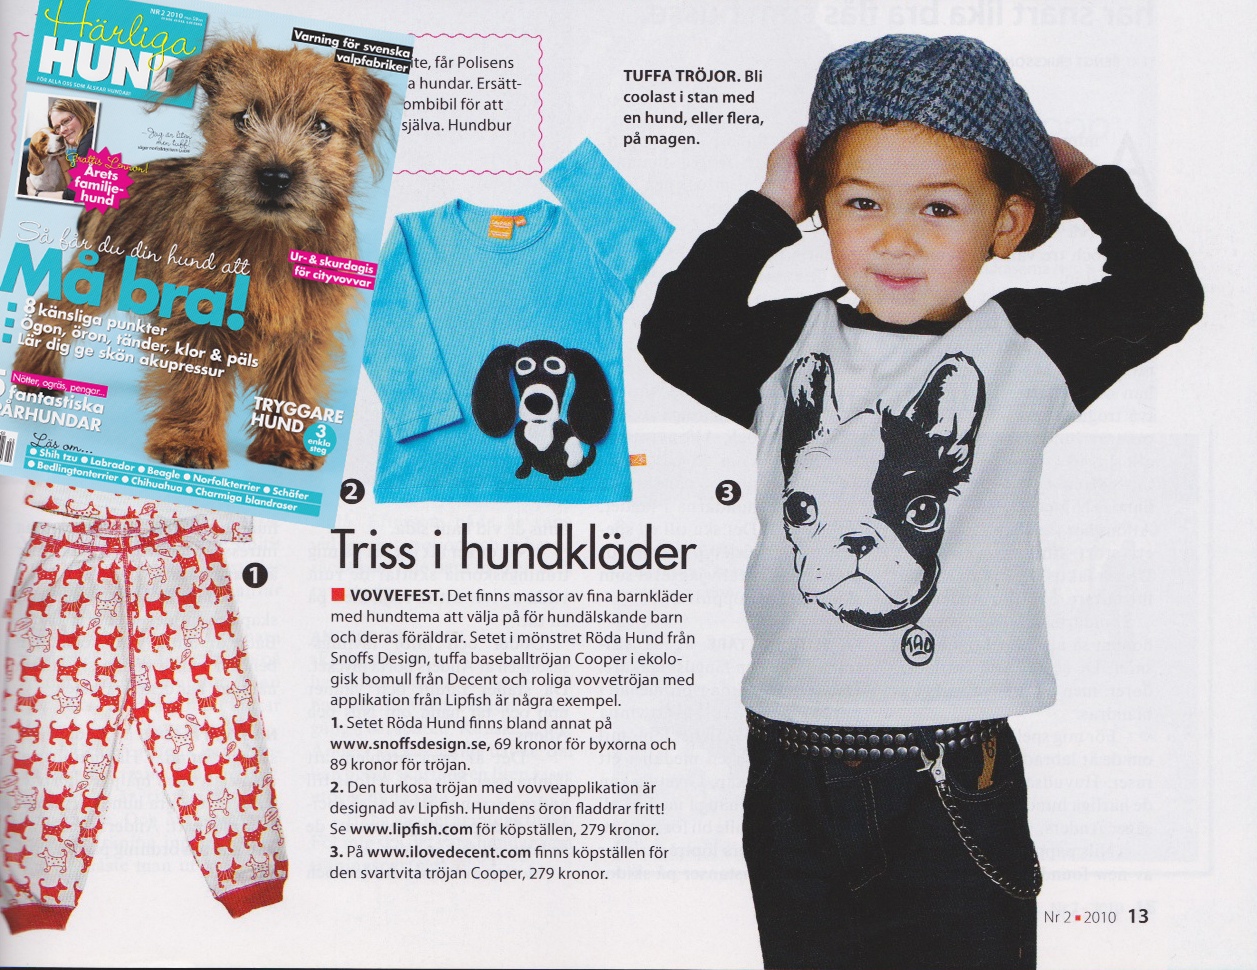 Featured in Härliga Hund